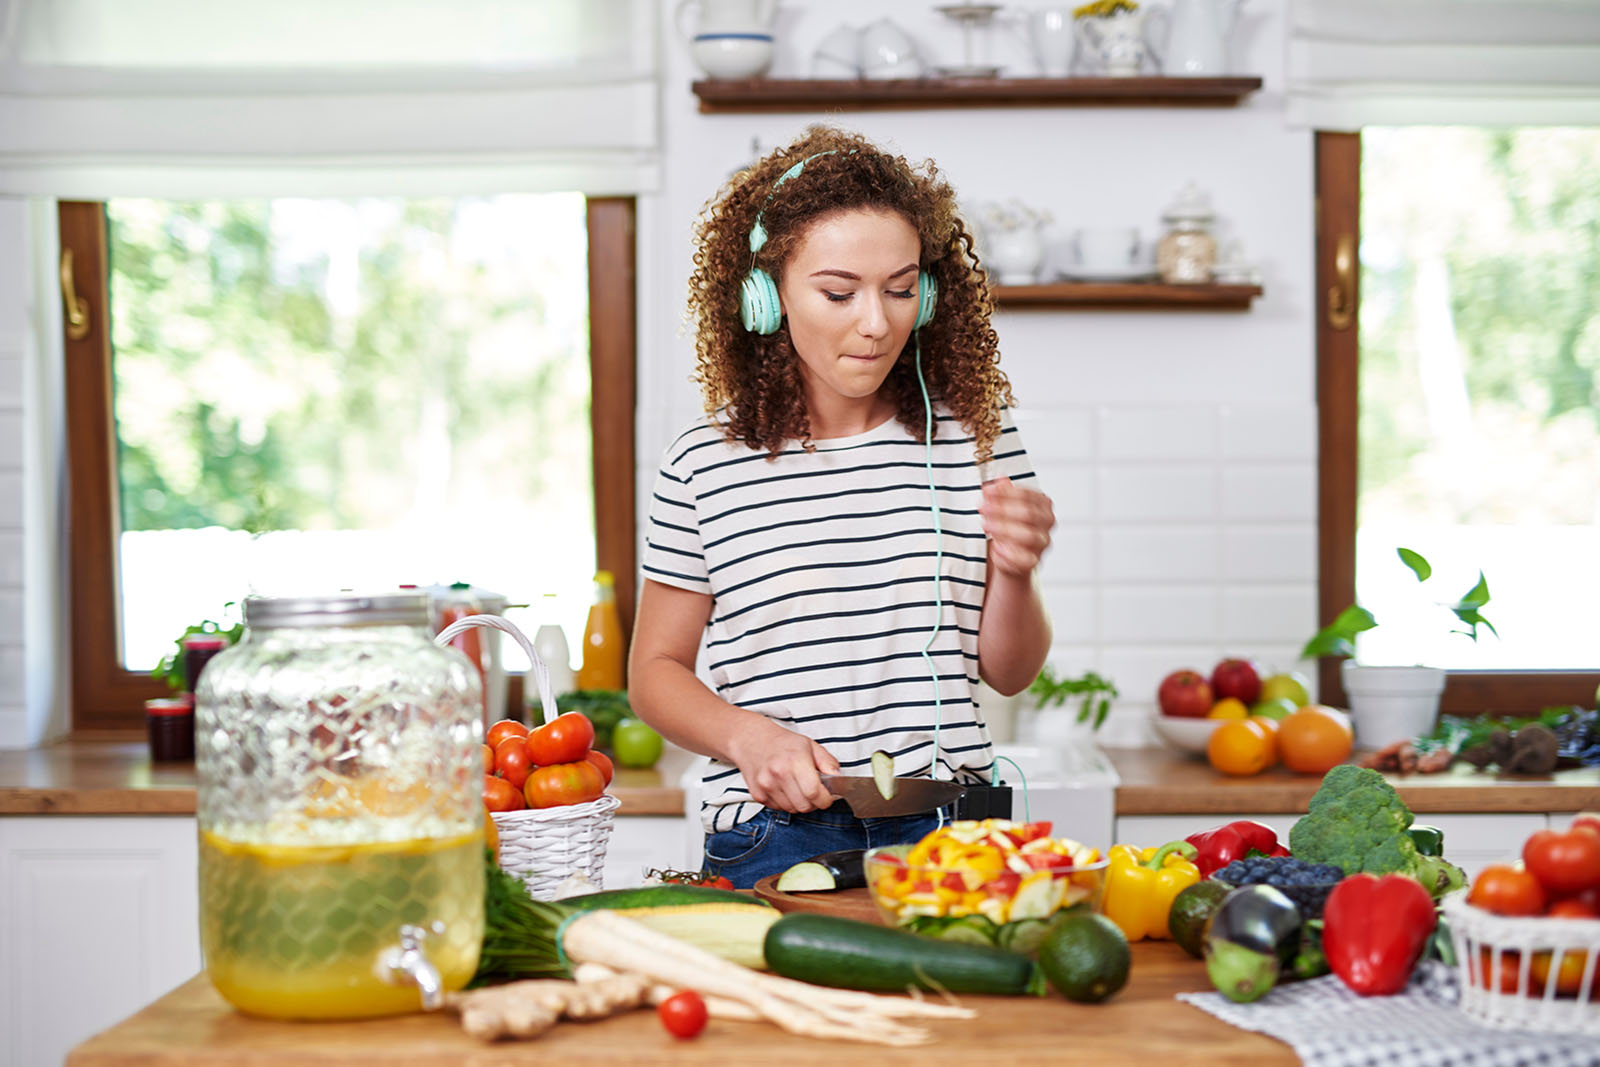 happy-woman-cooking-in-kitchen